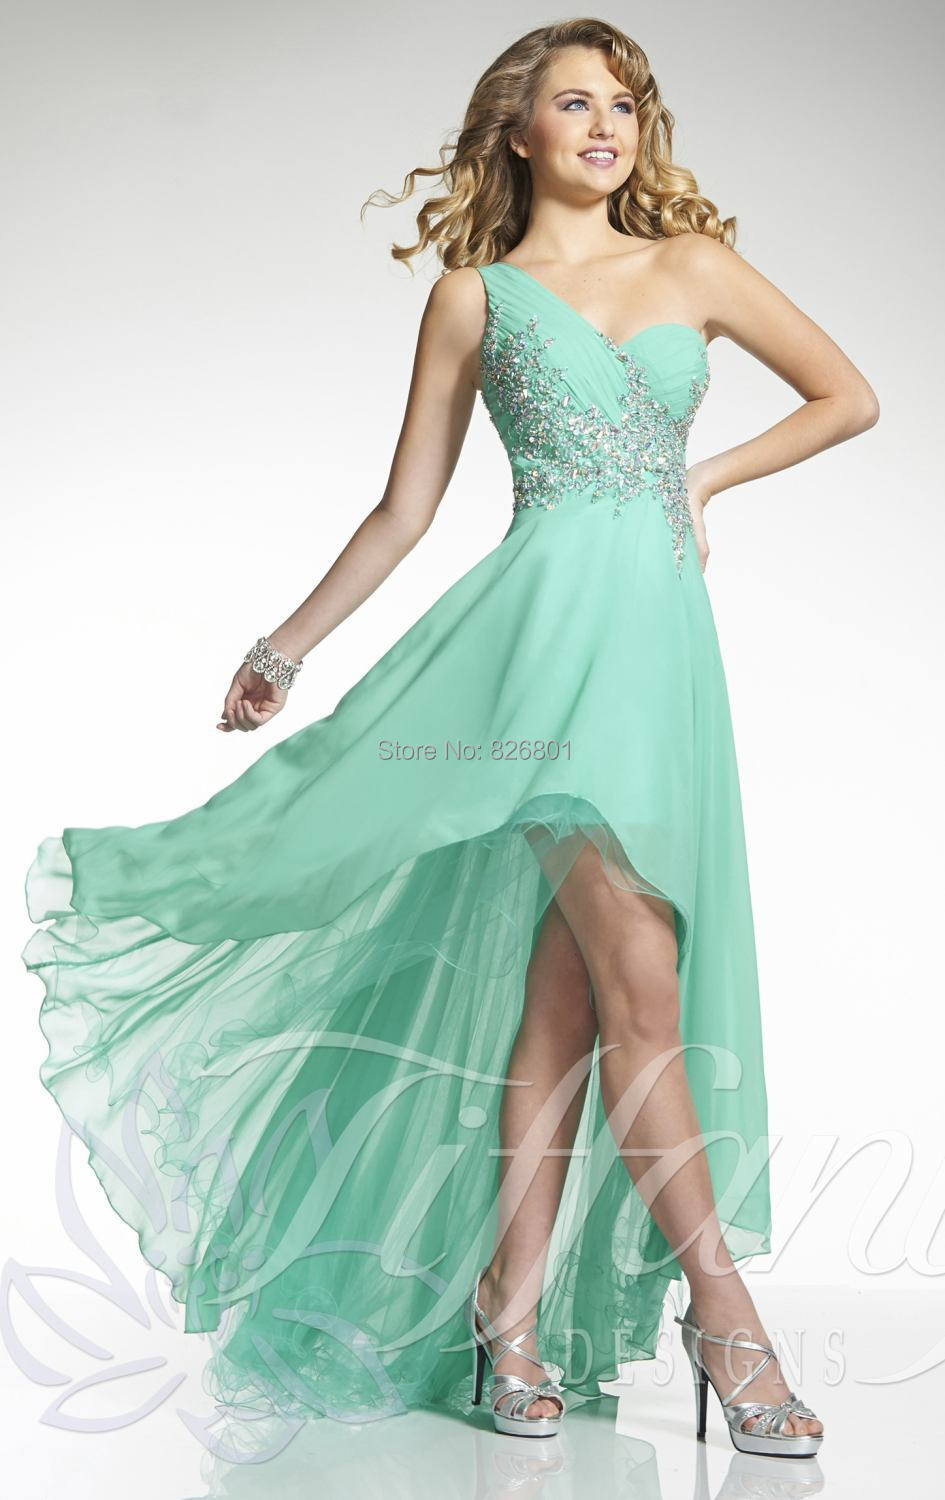 Perfect Sewing Patterns Prom Dresses Vignette - Womens Dresses ...